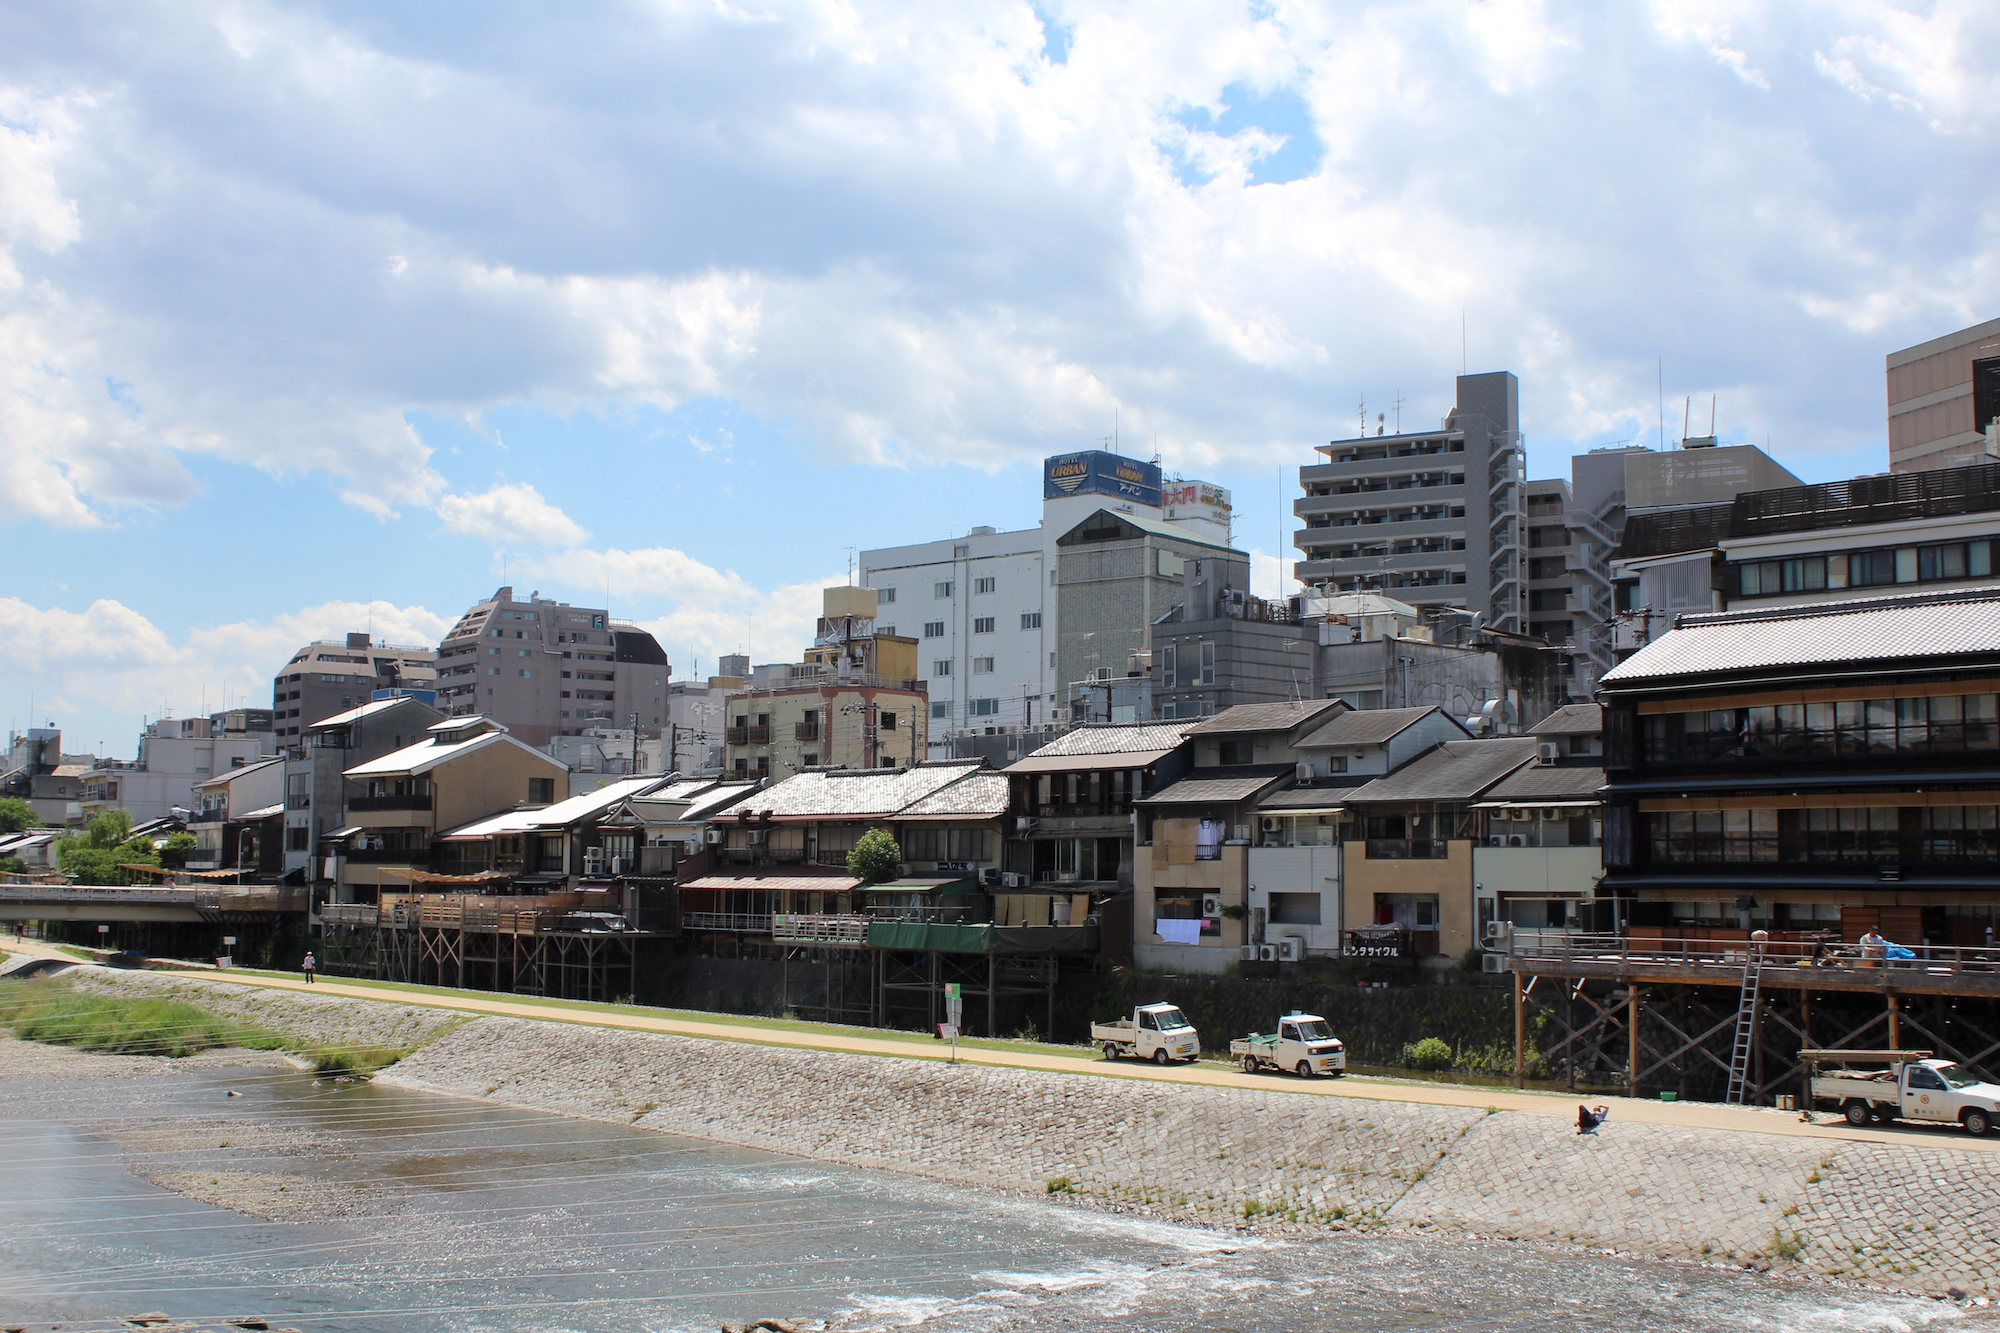 Homes along the Kamo river in central Kyoto